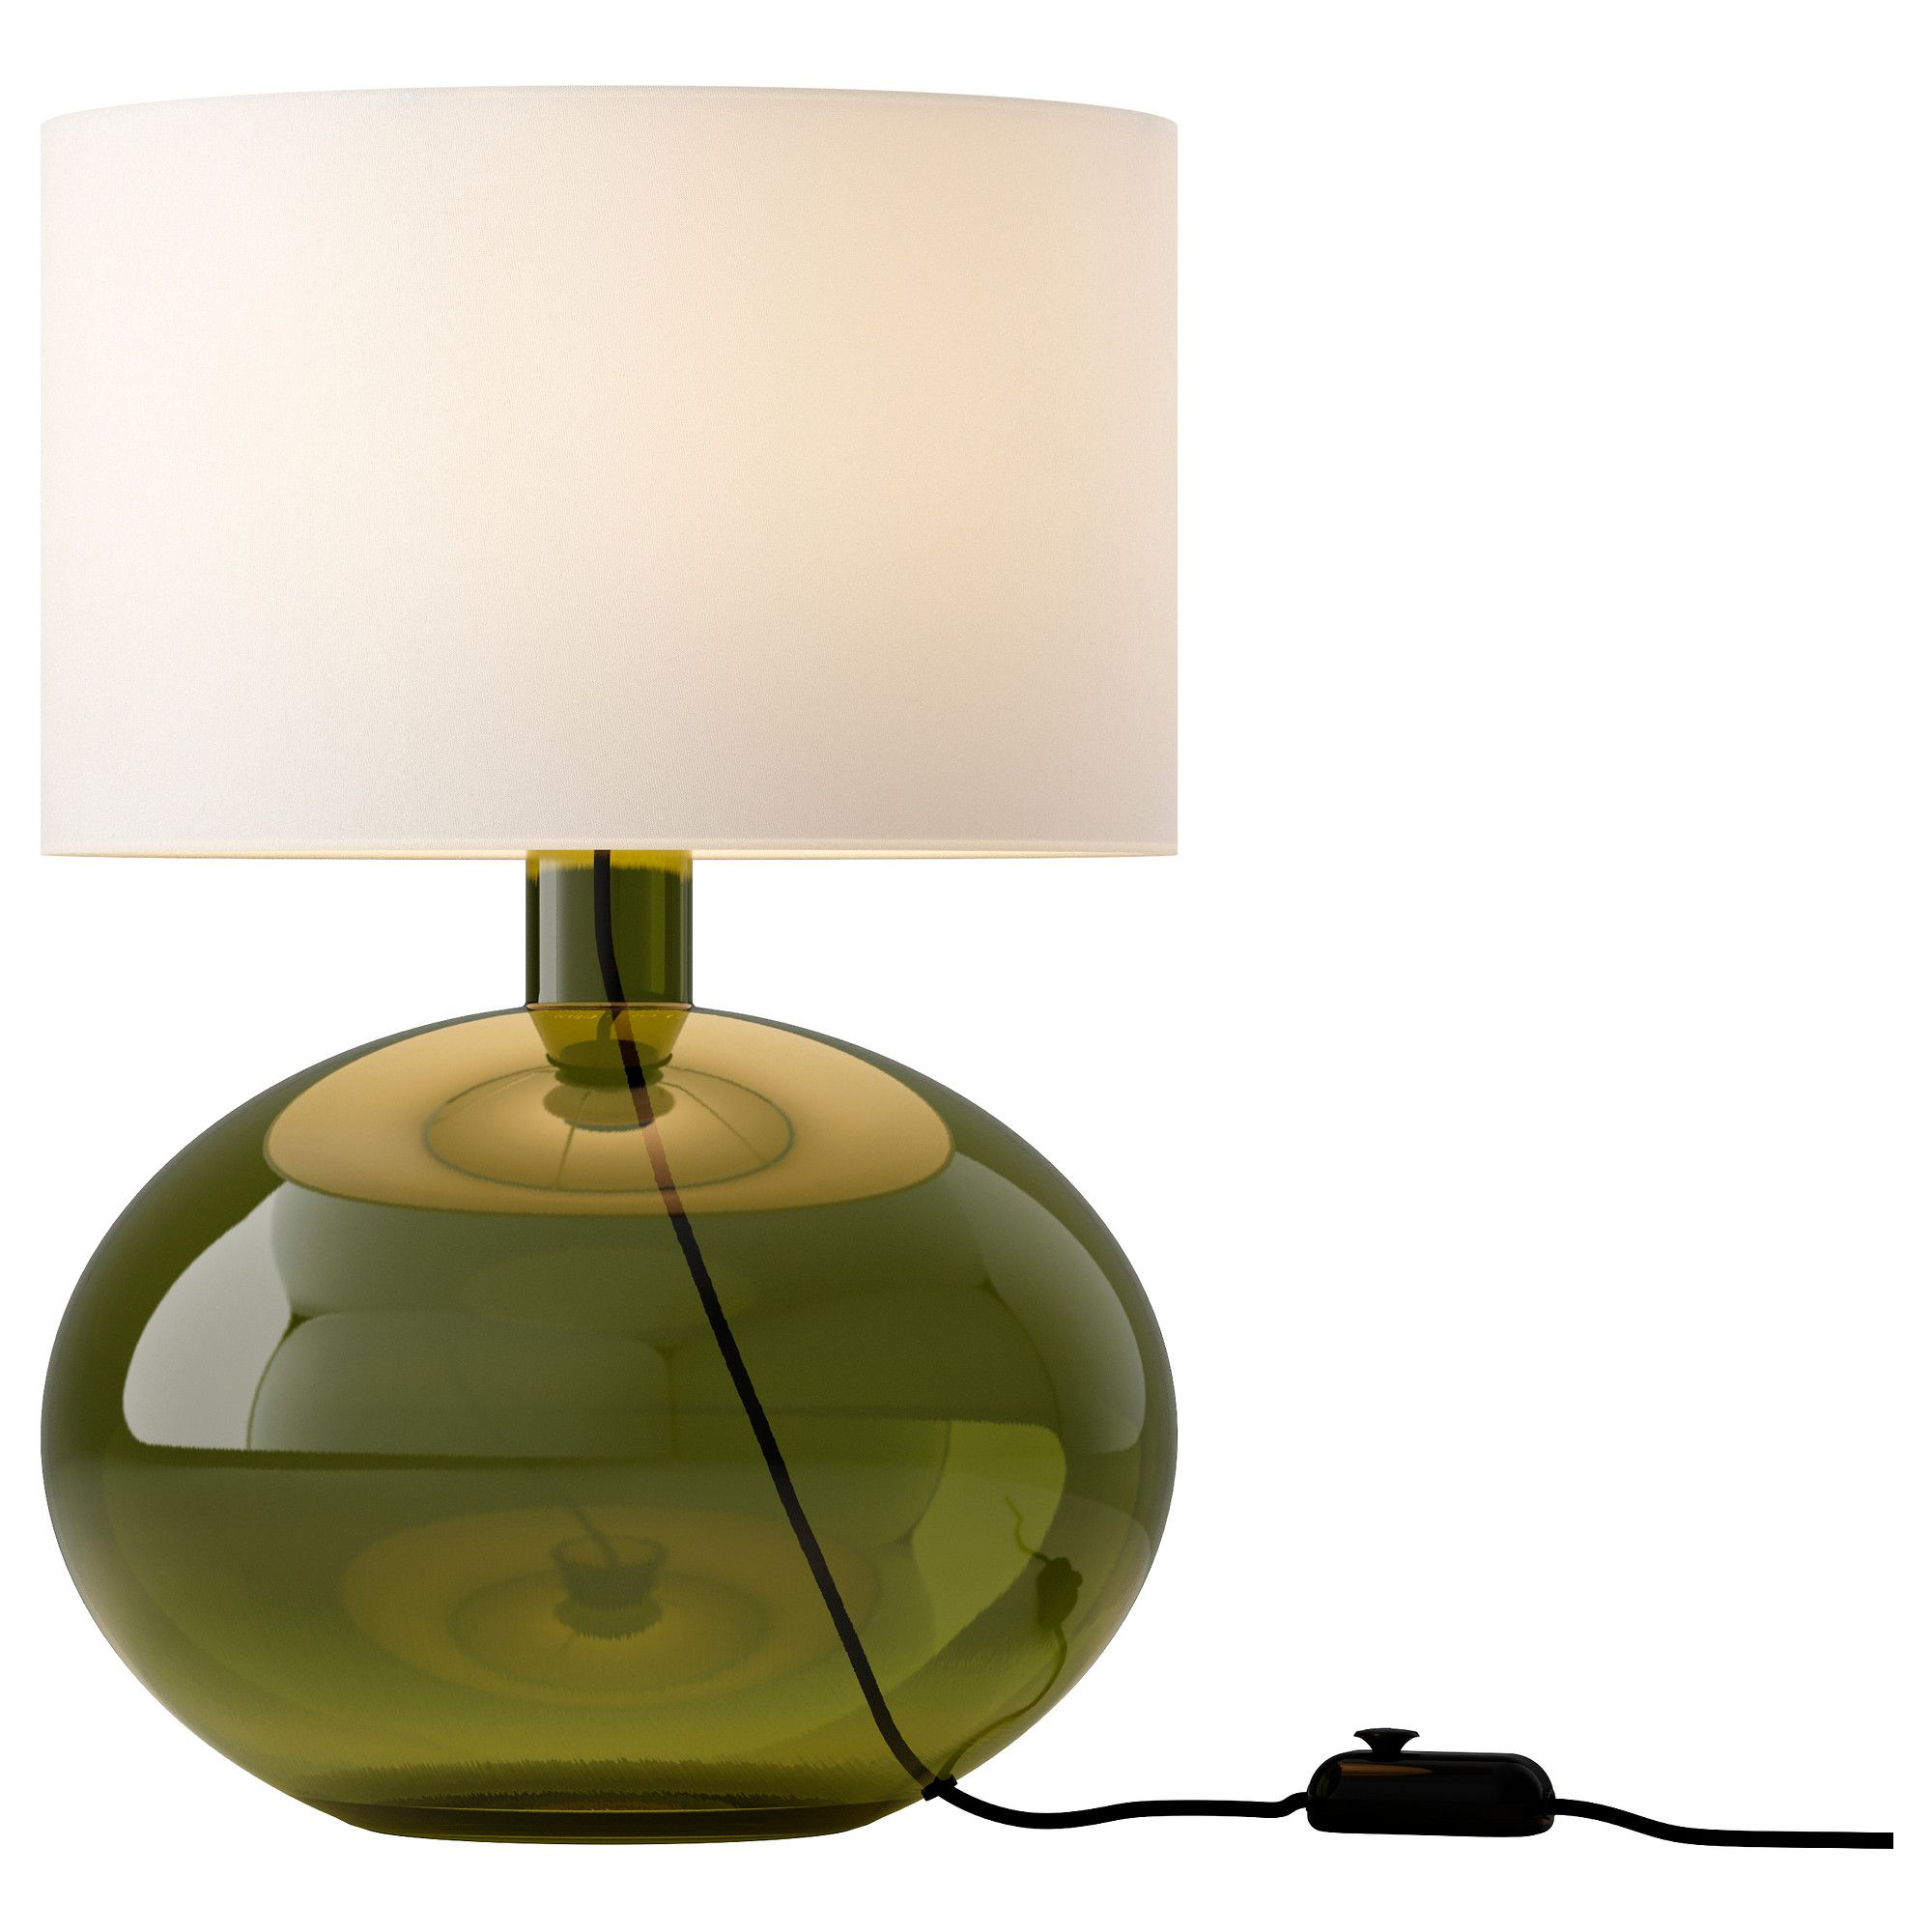 Us Furniture And Home Furnishings Home Ikea Lamp